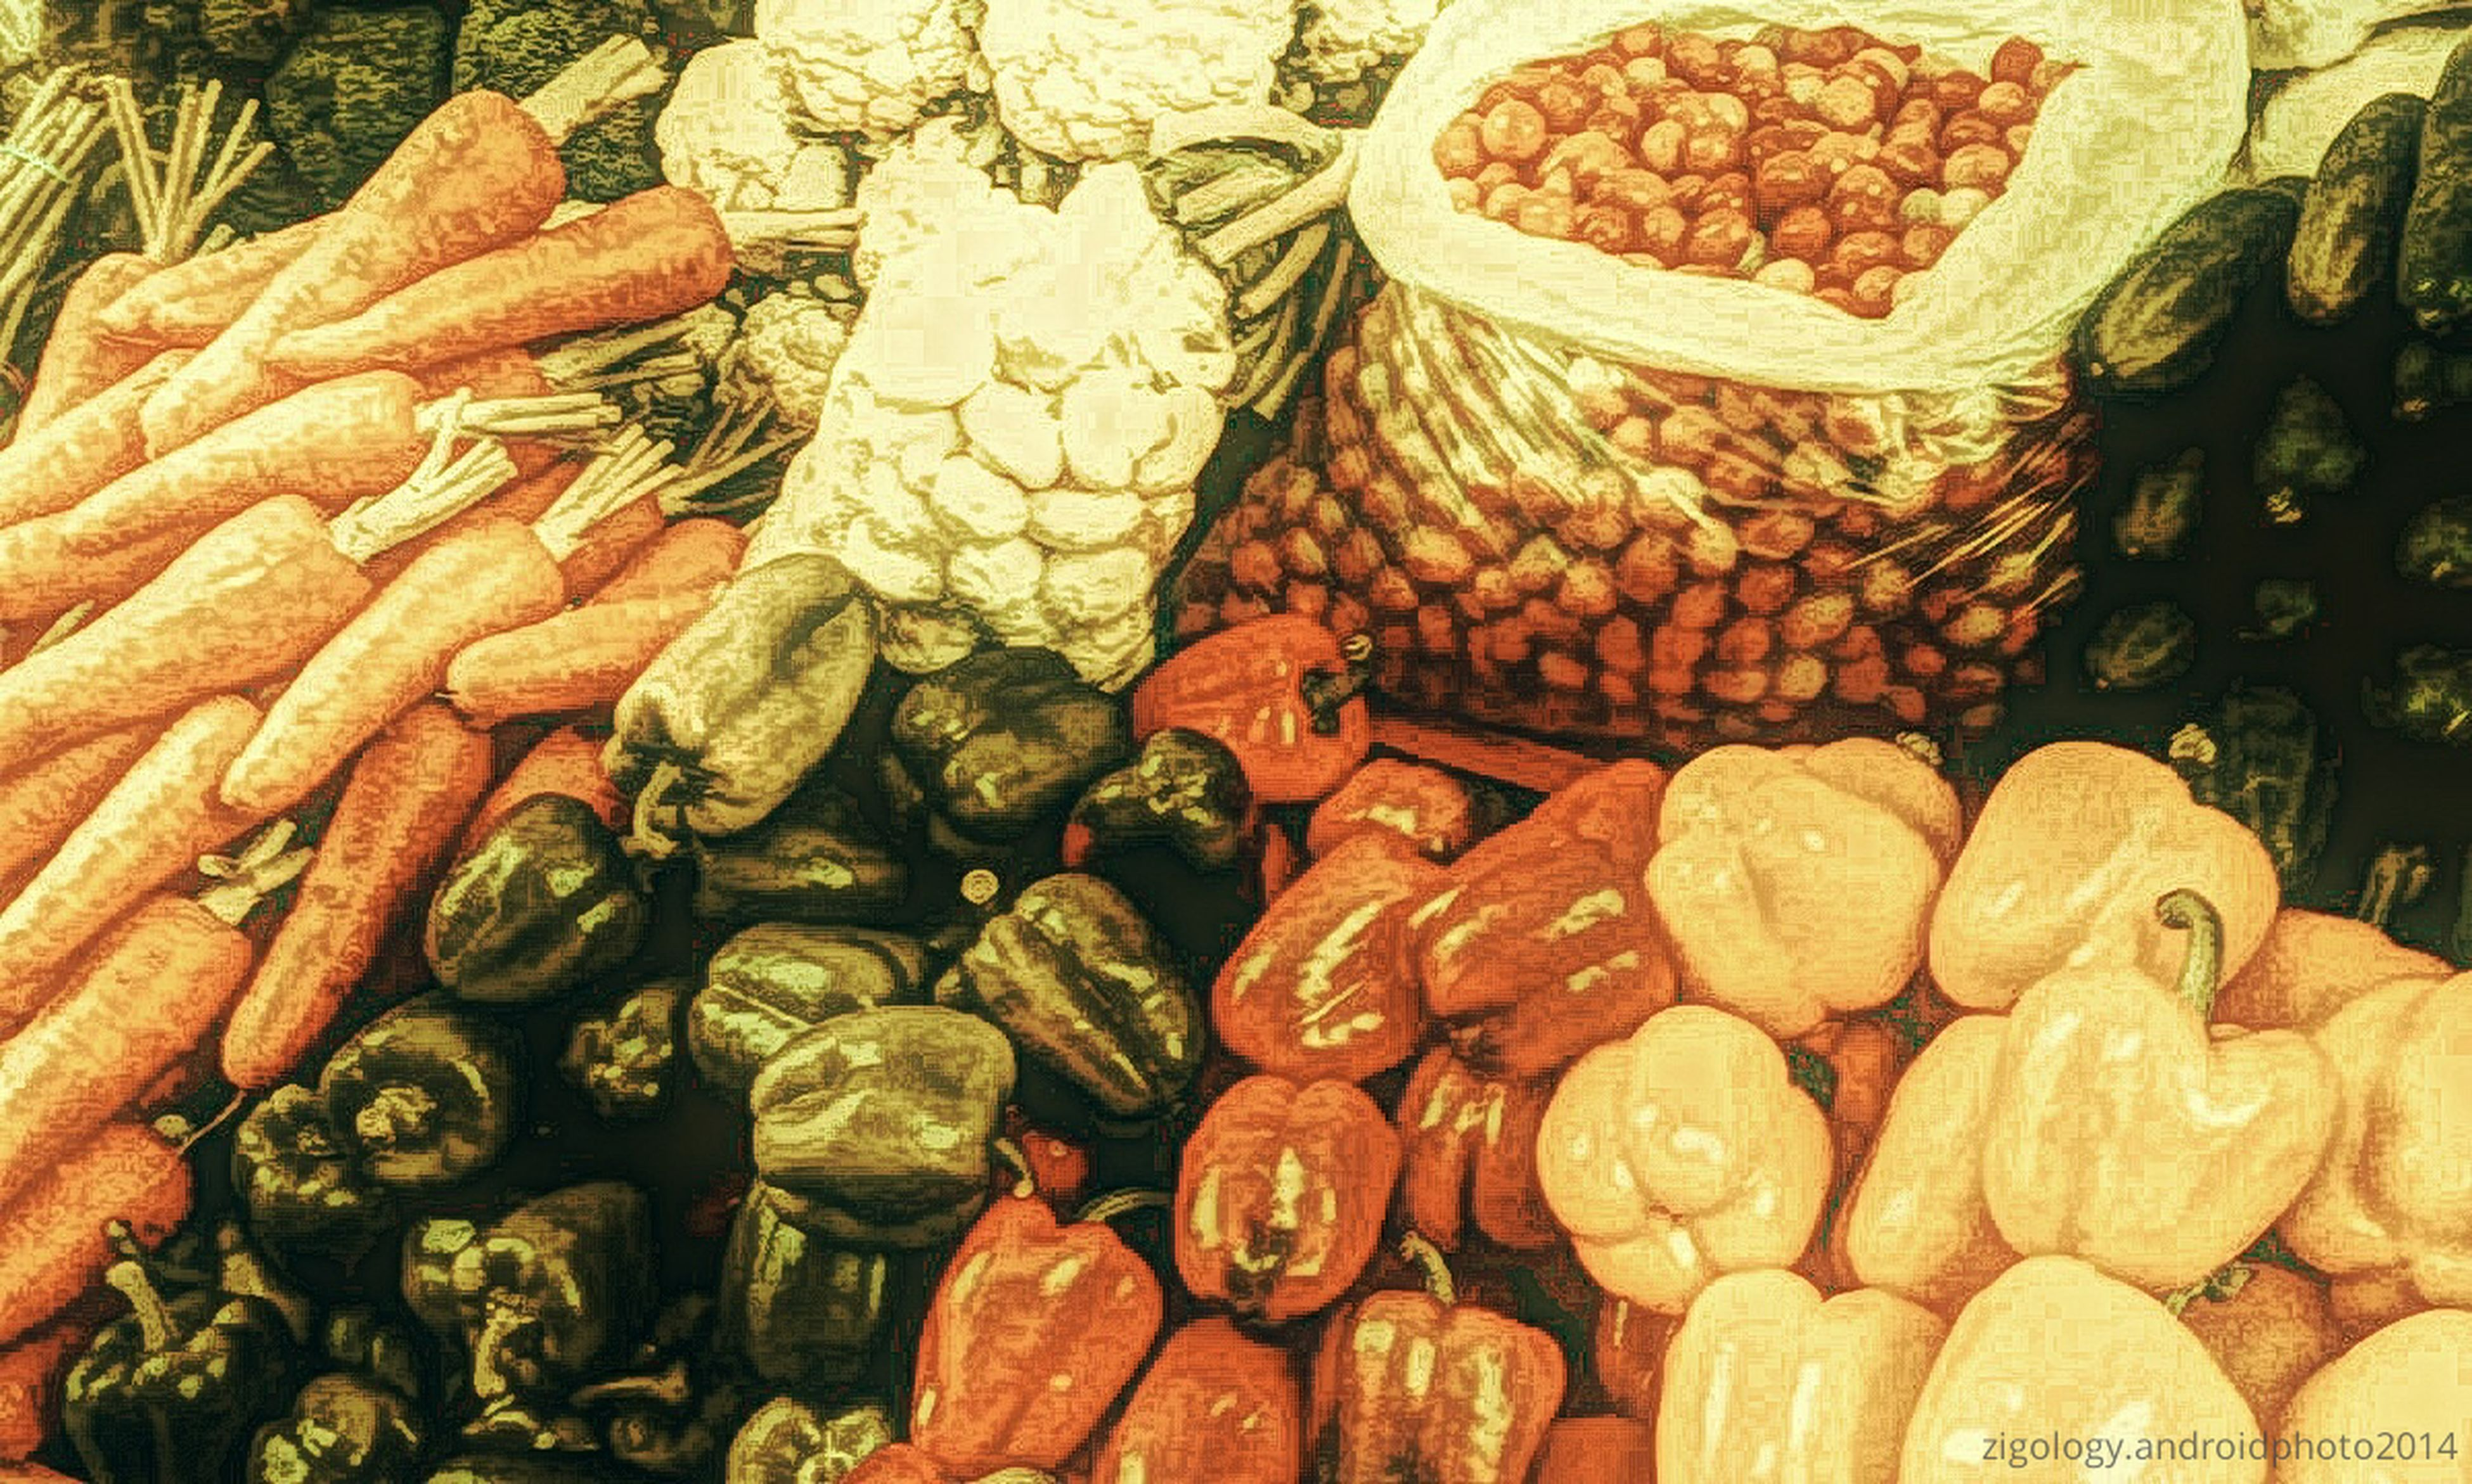 food and drink, food, freshness, indoors, healthy eating, still life, abundance, large group of objects, for sale, variation, retail, high angle view, choice, market, market stall, vegetable, arrangement, raw food, close-up, wood - material